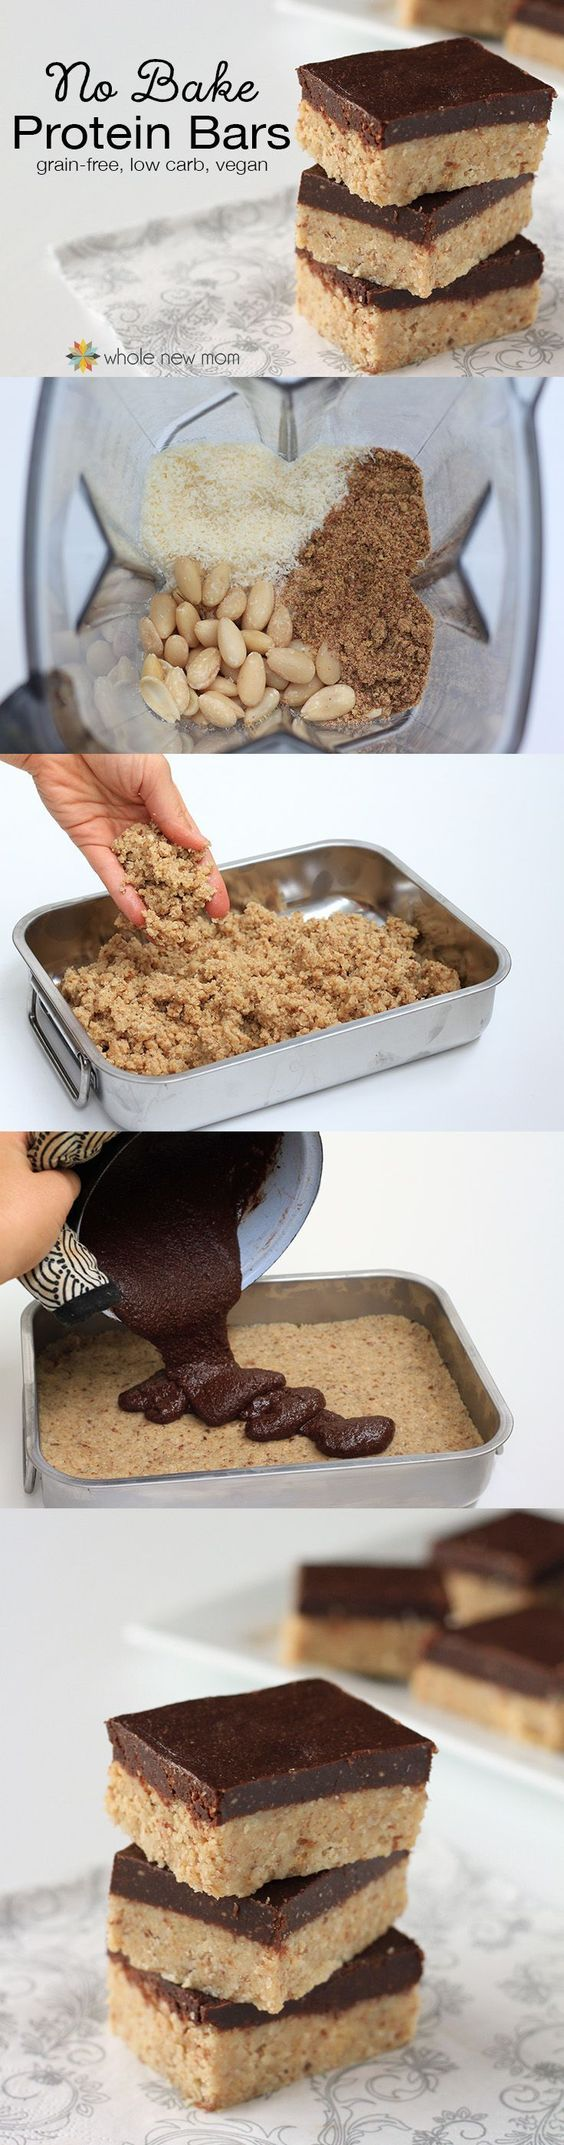 These Homemade Protein Bars are sugar, soy, grain, dairy, and egg-free, but loaded with yumminess! Stop spending a fortune on store-bought bars and make your own #healthy #proteinbars #savemoney